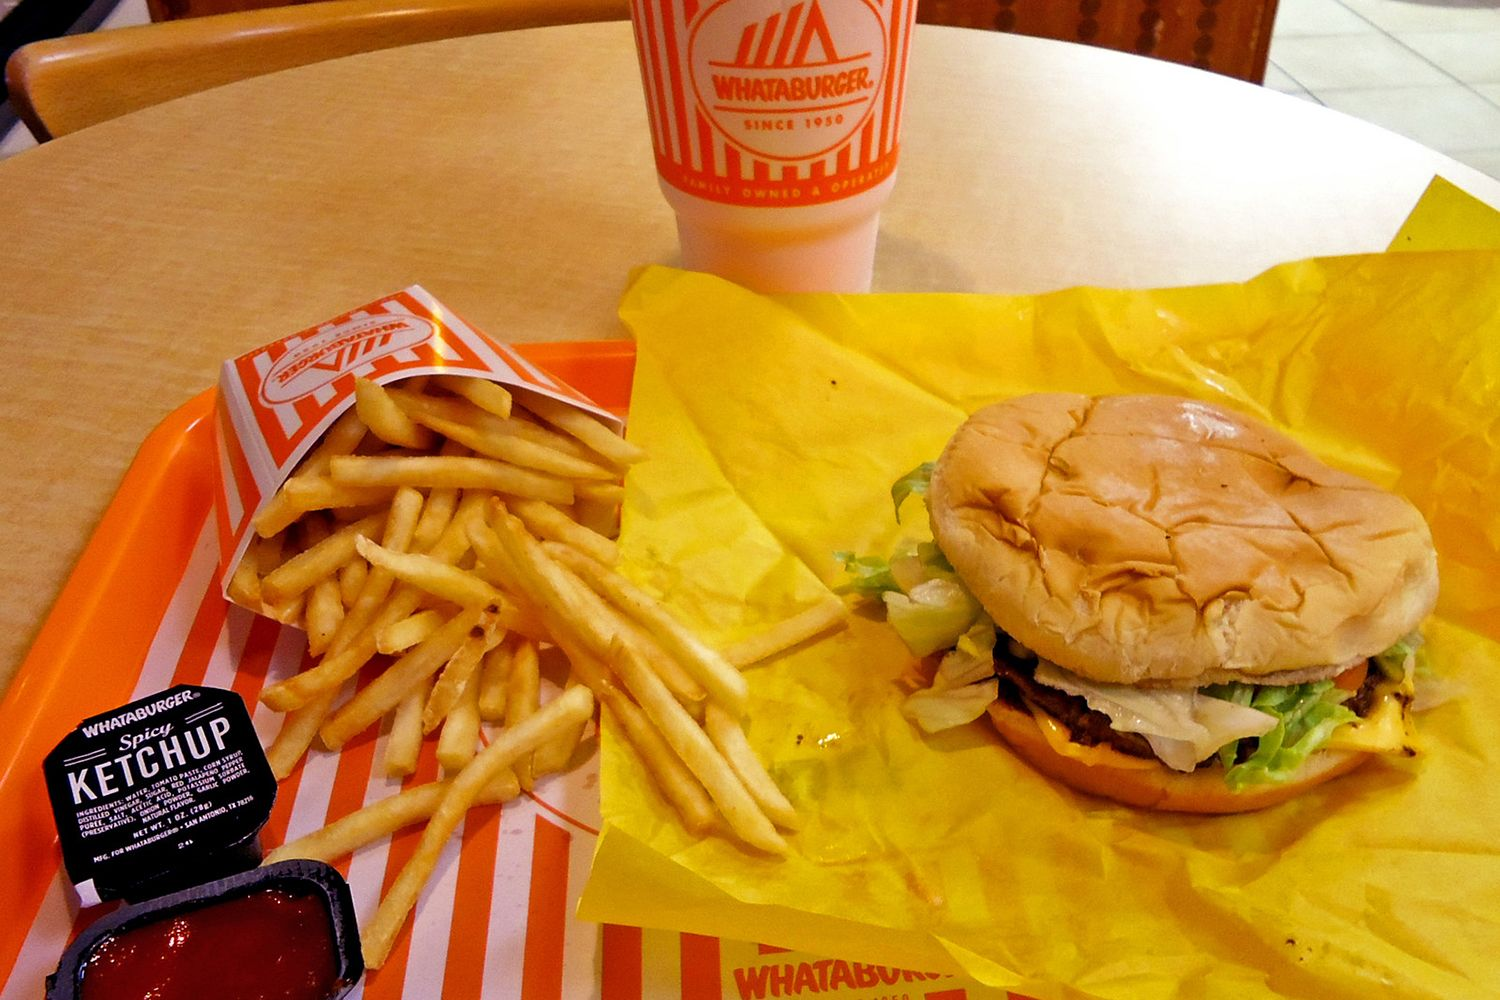 16 Regional Fast-Food Chains You Need To Know About - Best